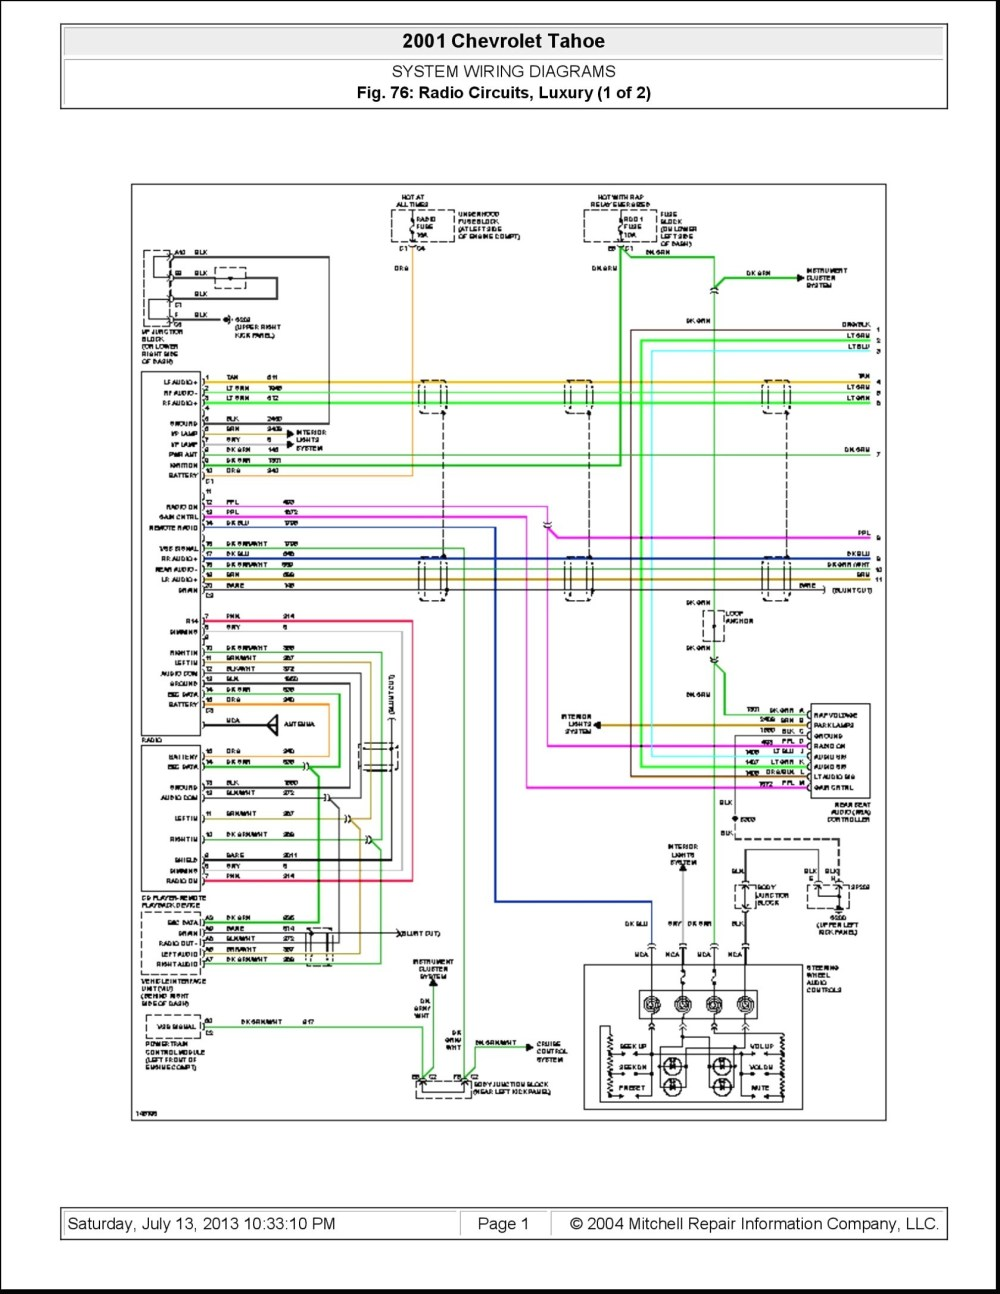 medium resolution of 2004 chevrolet tahoe wiring harness wiring diagram paper 2002 tahoe radio wiring harness diagram tahoe wiring harness diagram